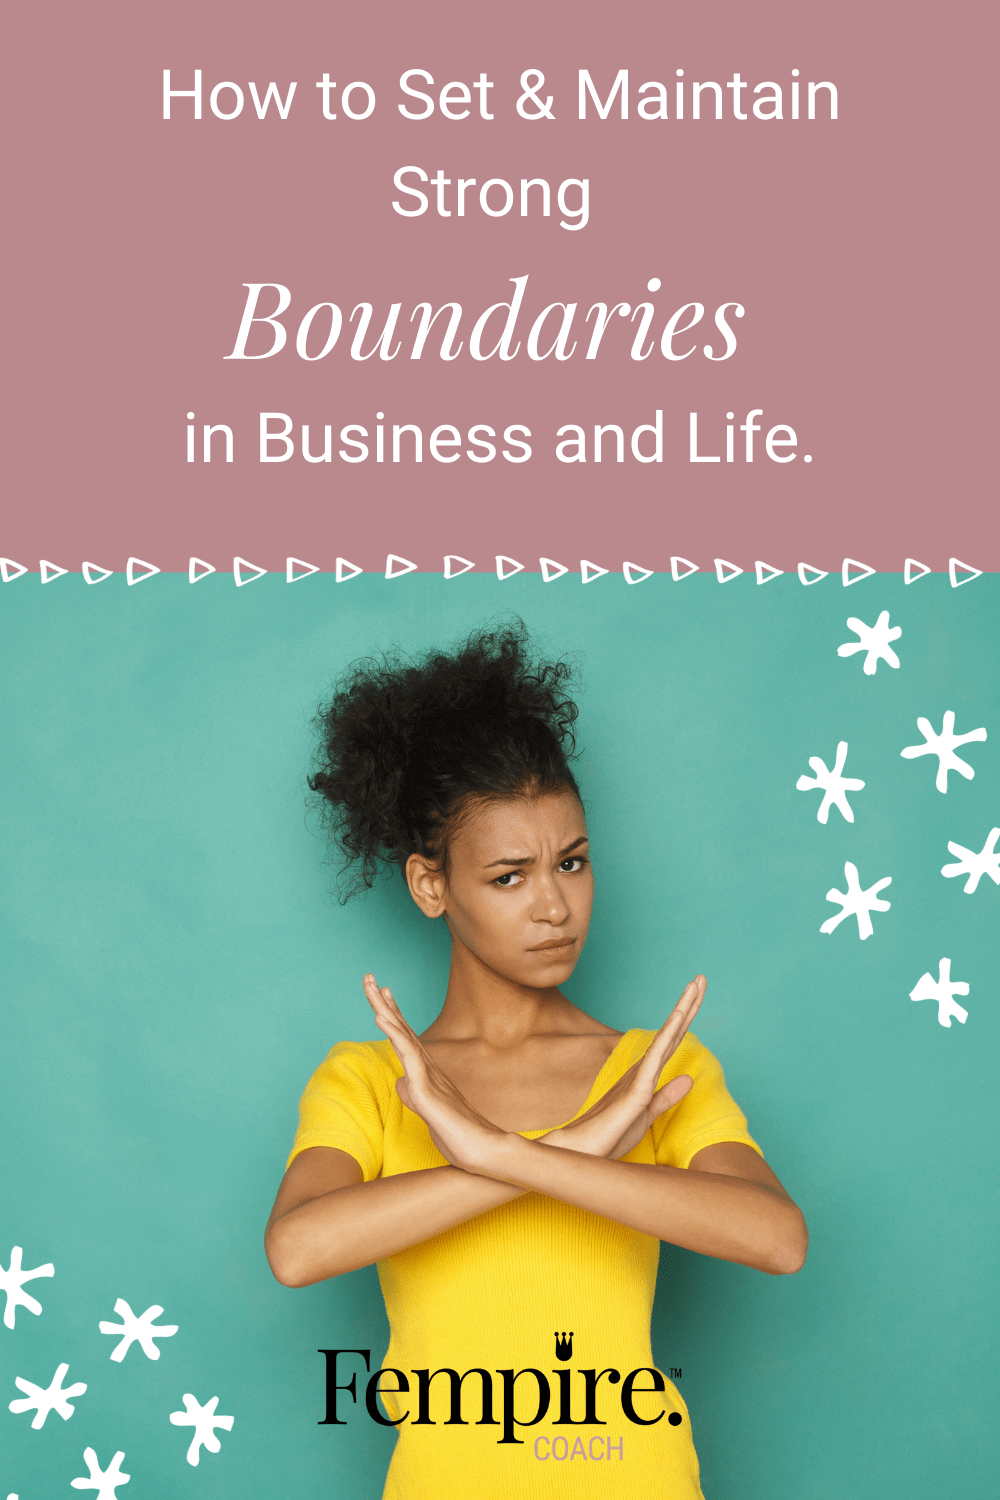 There's an art to setting and maintaining strong, healthy boundaries and it's not always easy. Discover my 5 strategies to set healthy boundaries so that you can guard your emotional well-being and sanity, and be the best version of yourself in business and life. #fempire #fempirecoach #entrepreneur #womeninbusiness #womensupportingwomen #boundaries #strongboundaries #selfcare #selflove #personalgrowth #businesssuccess